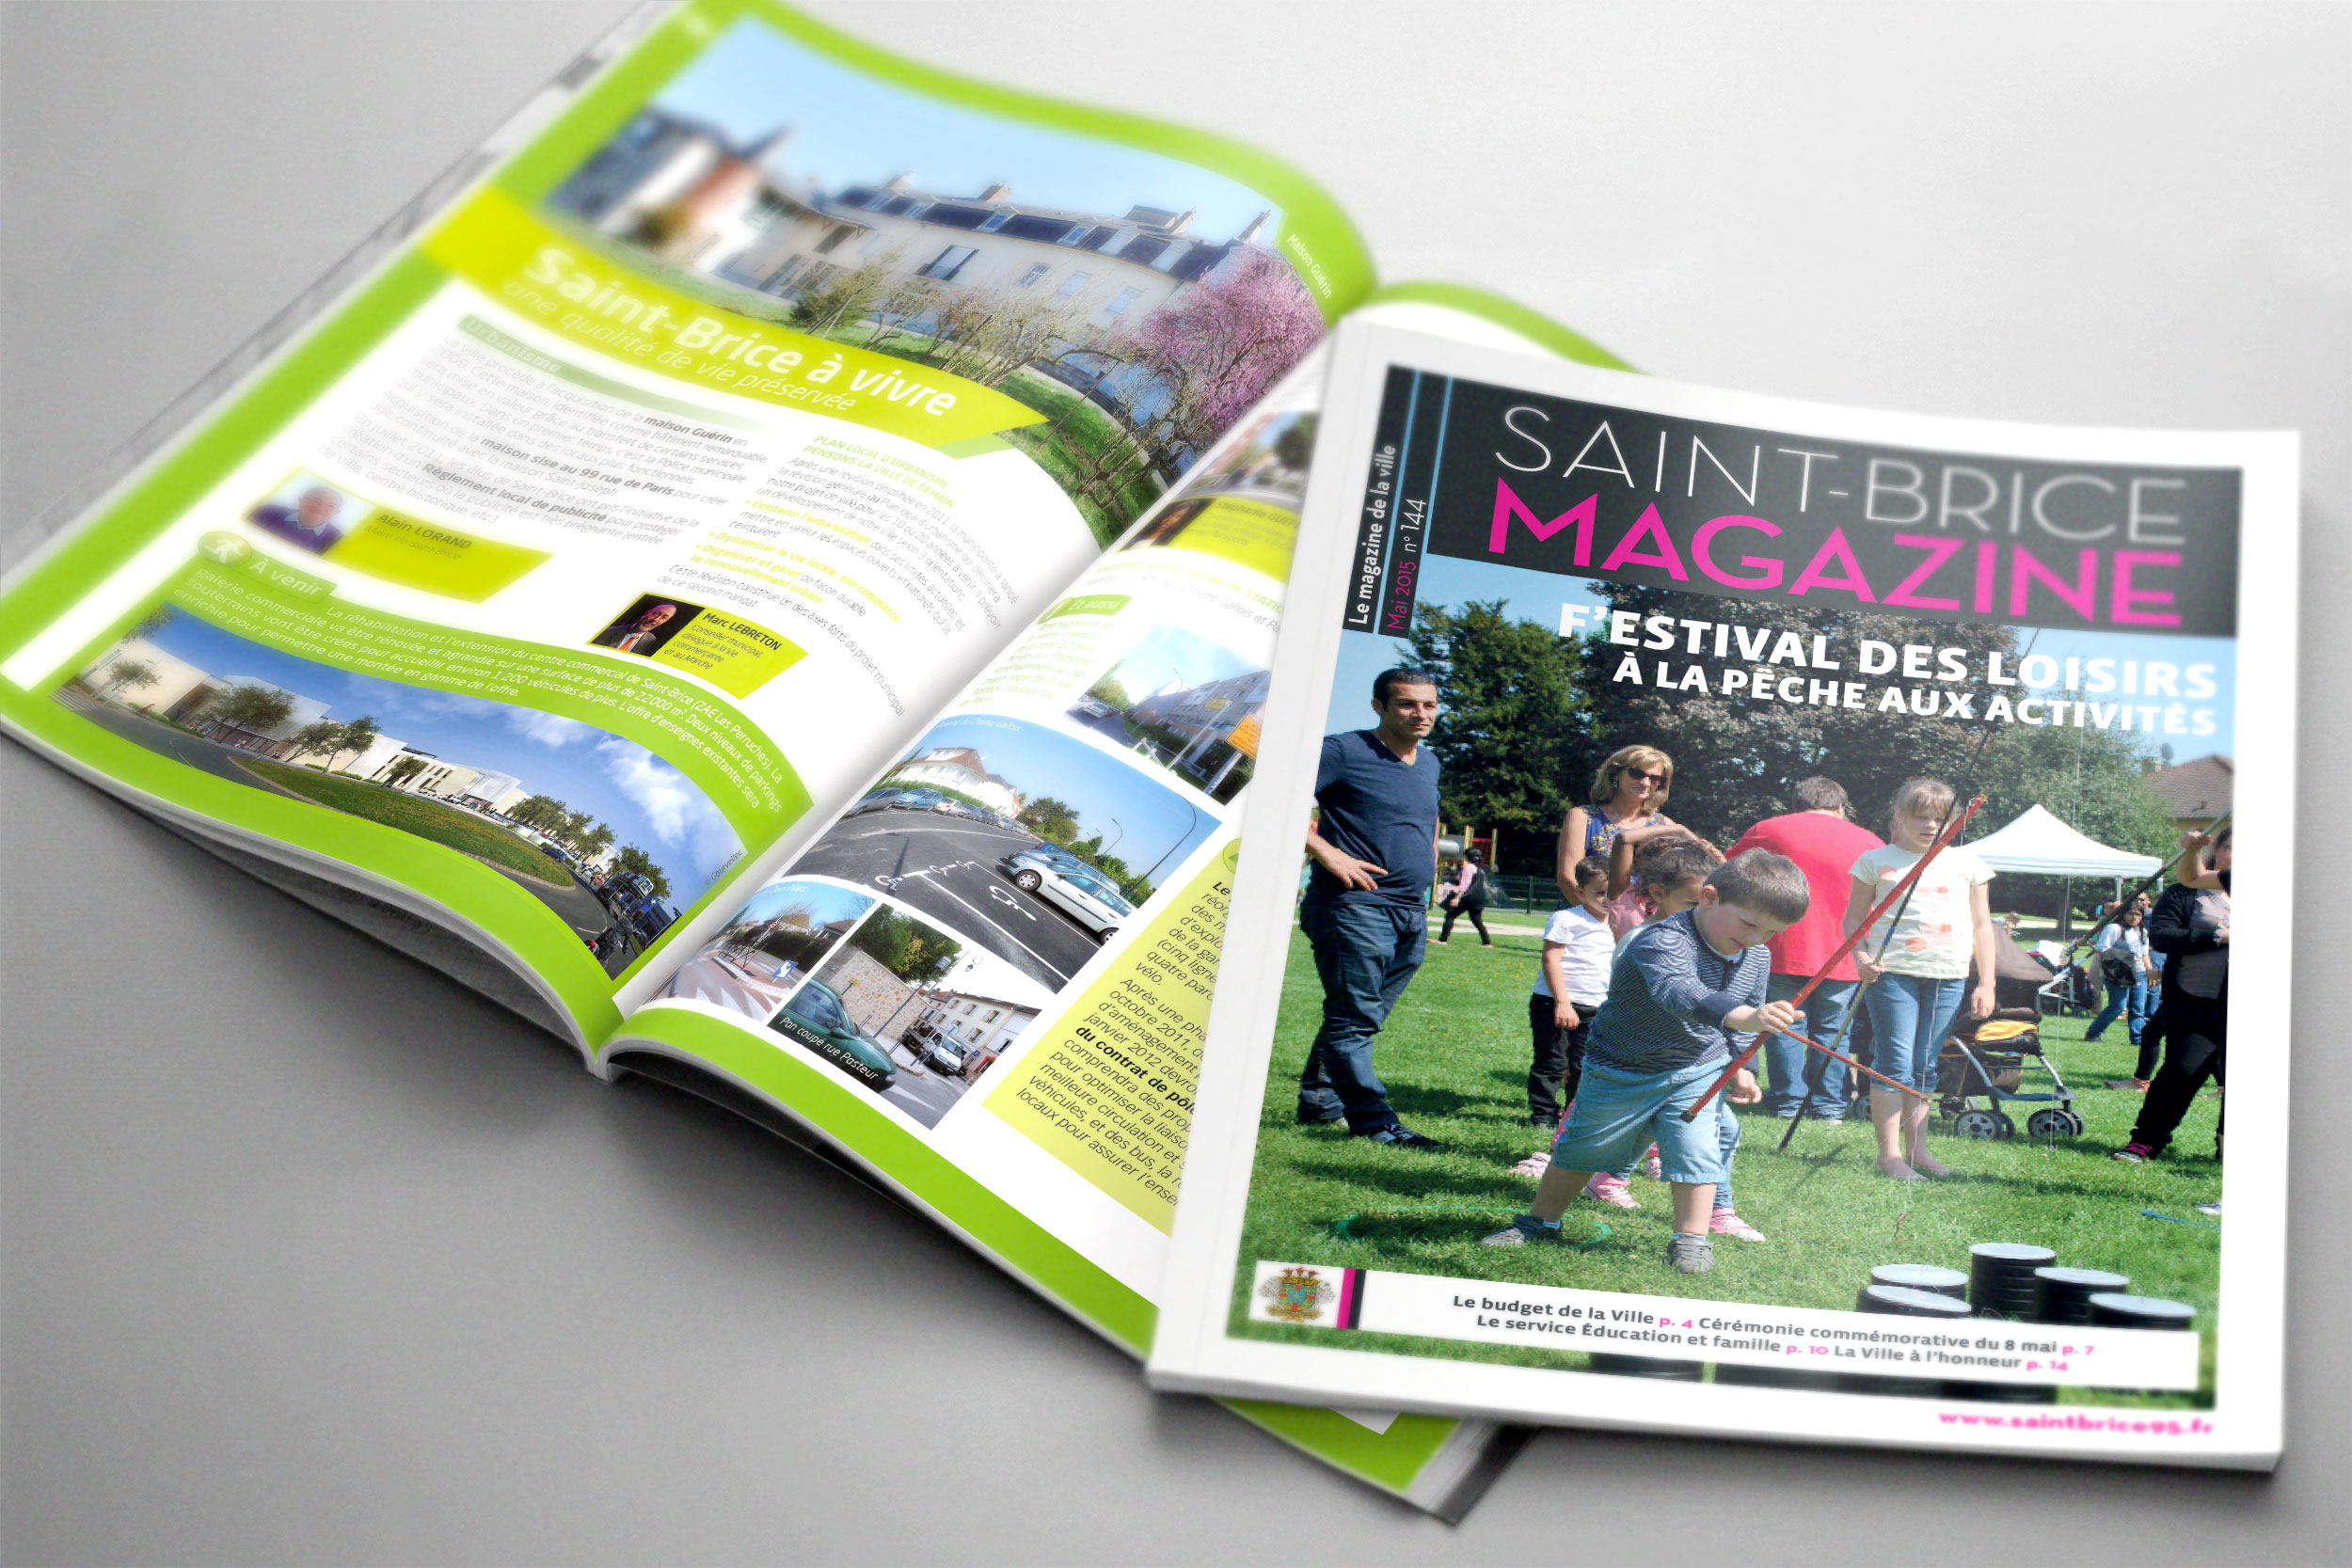 magazine municipal « Saint-Brice mag »